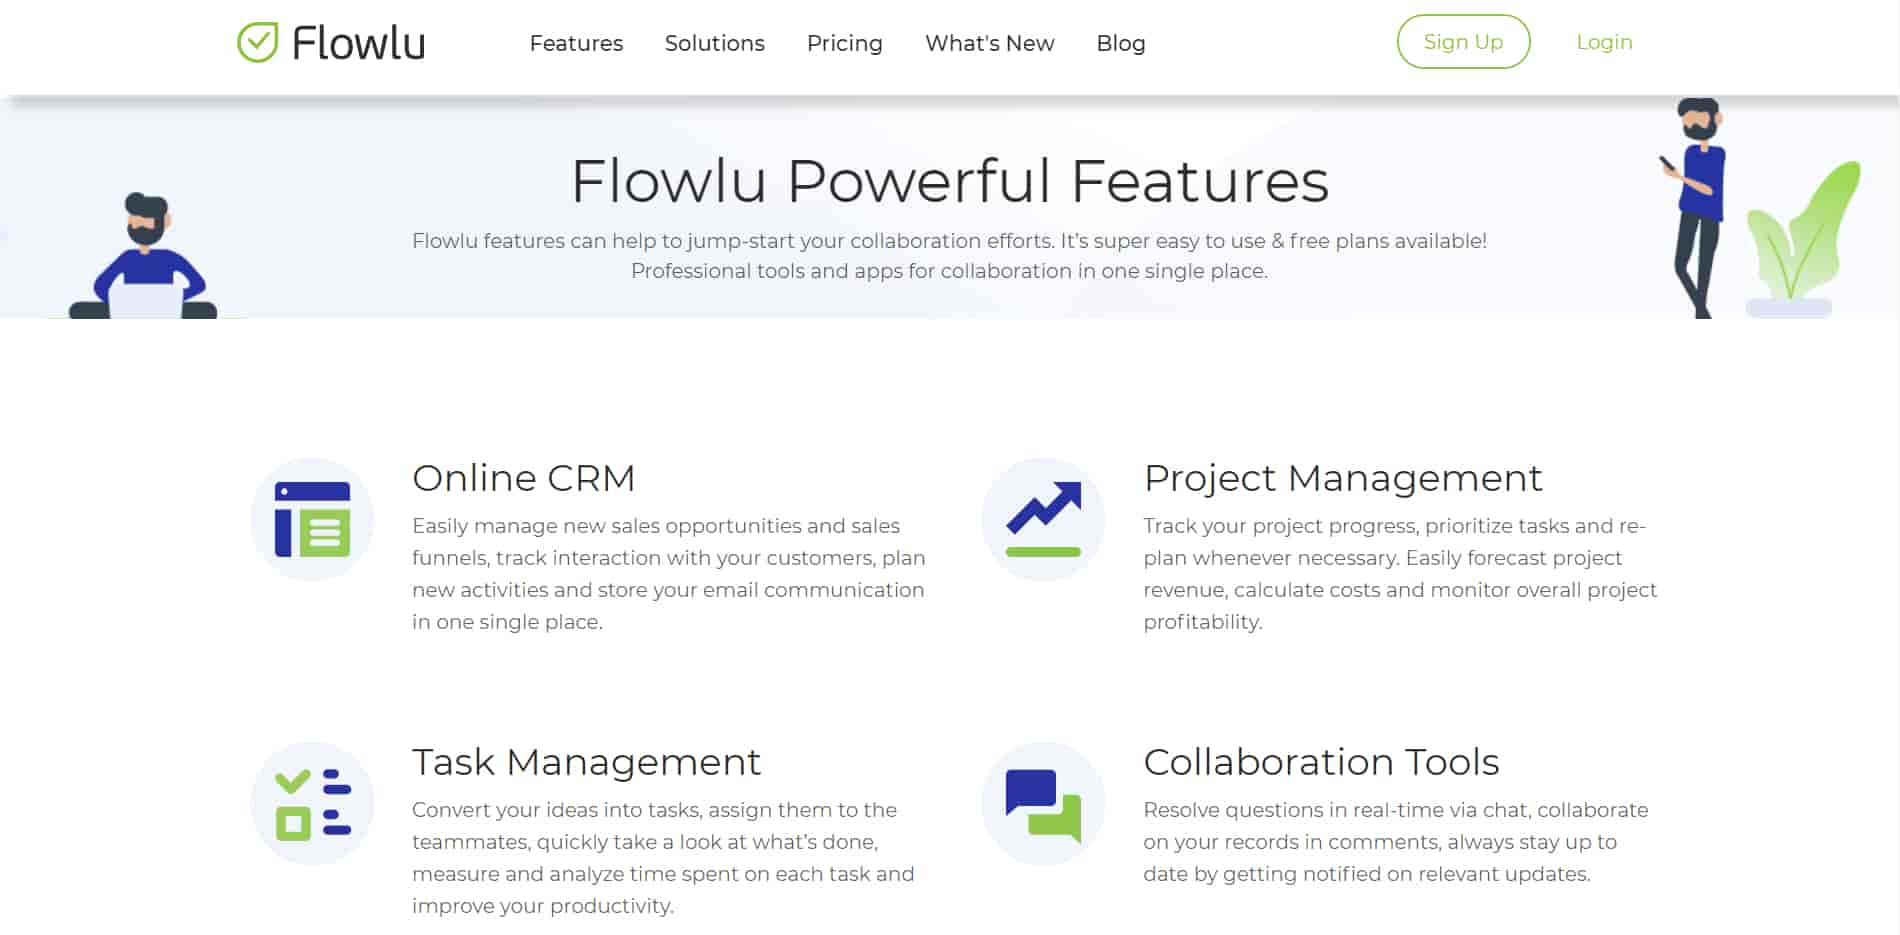 FlowLu is the best CRM for small business that want better collaboration and task management